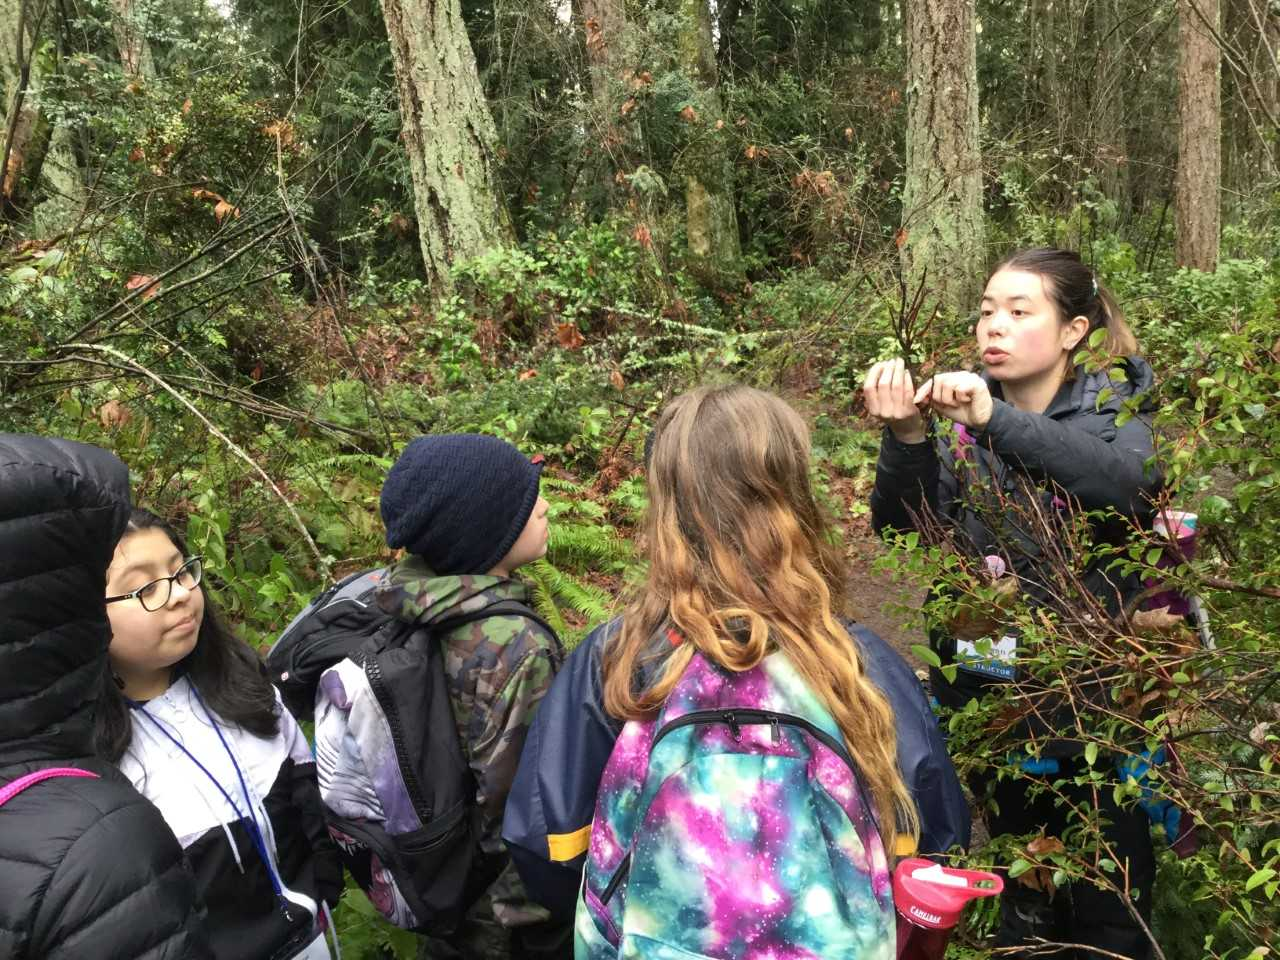 Graduate student Morgan Malley instructing School Overnight Program students in the forest.